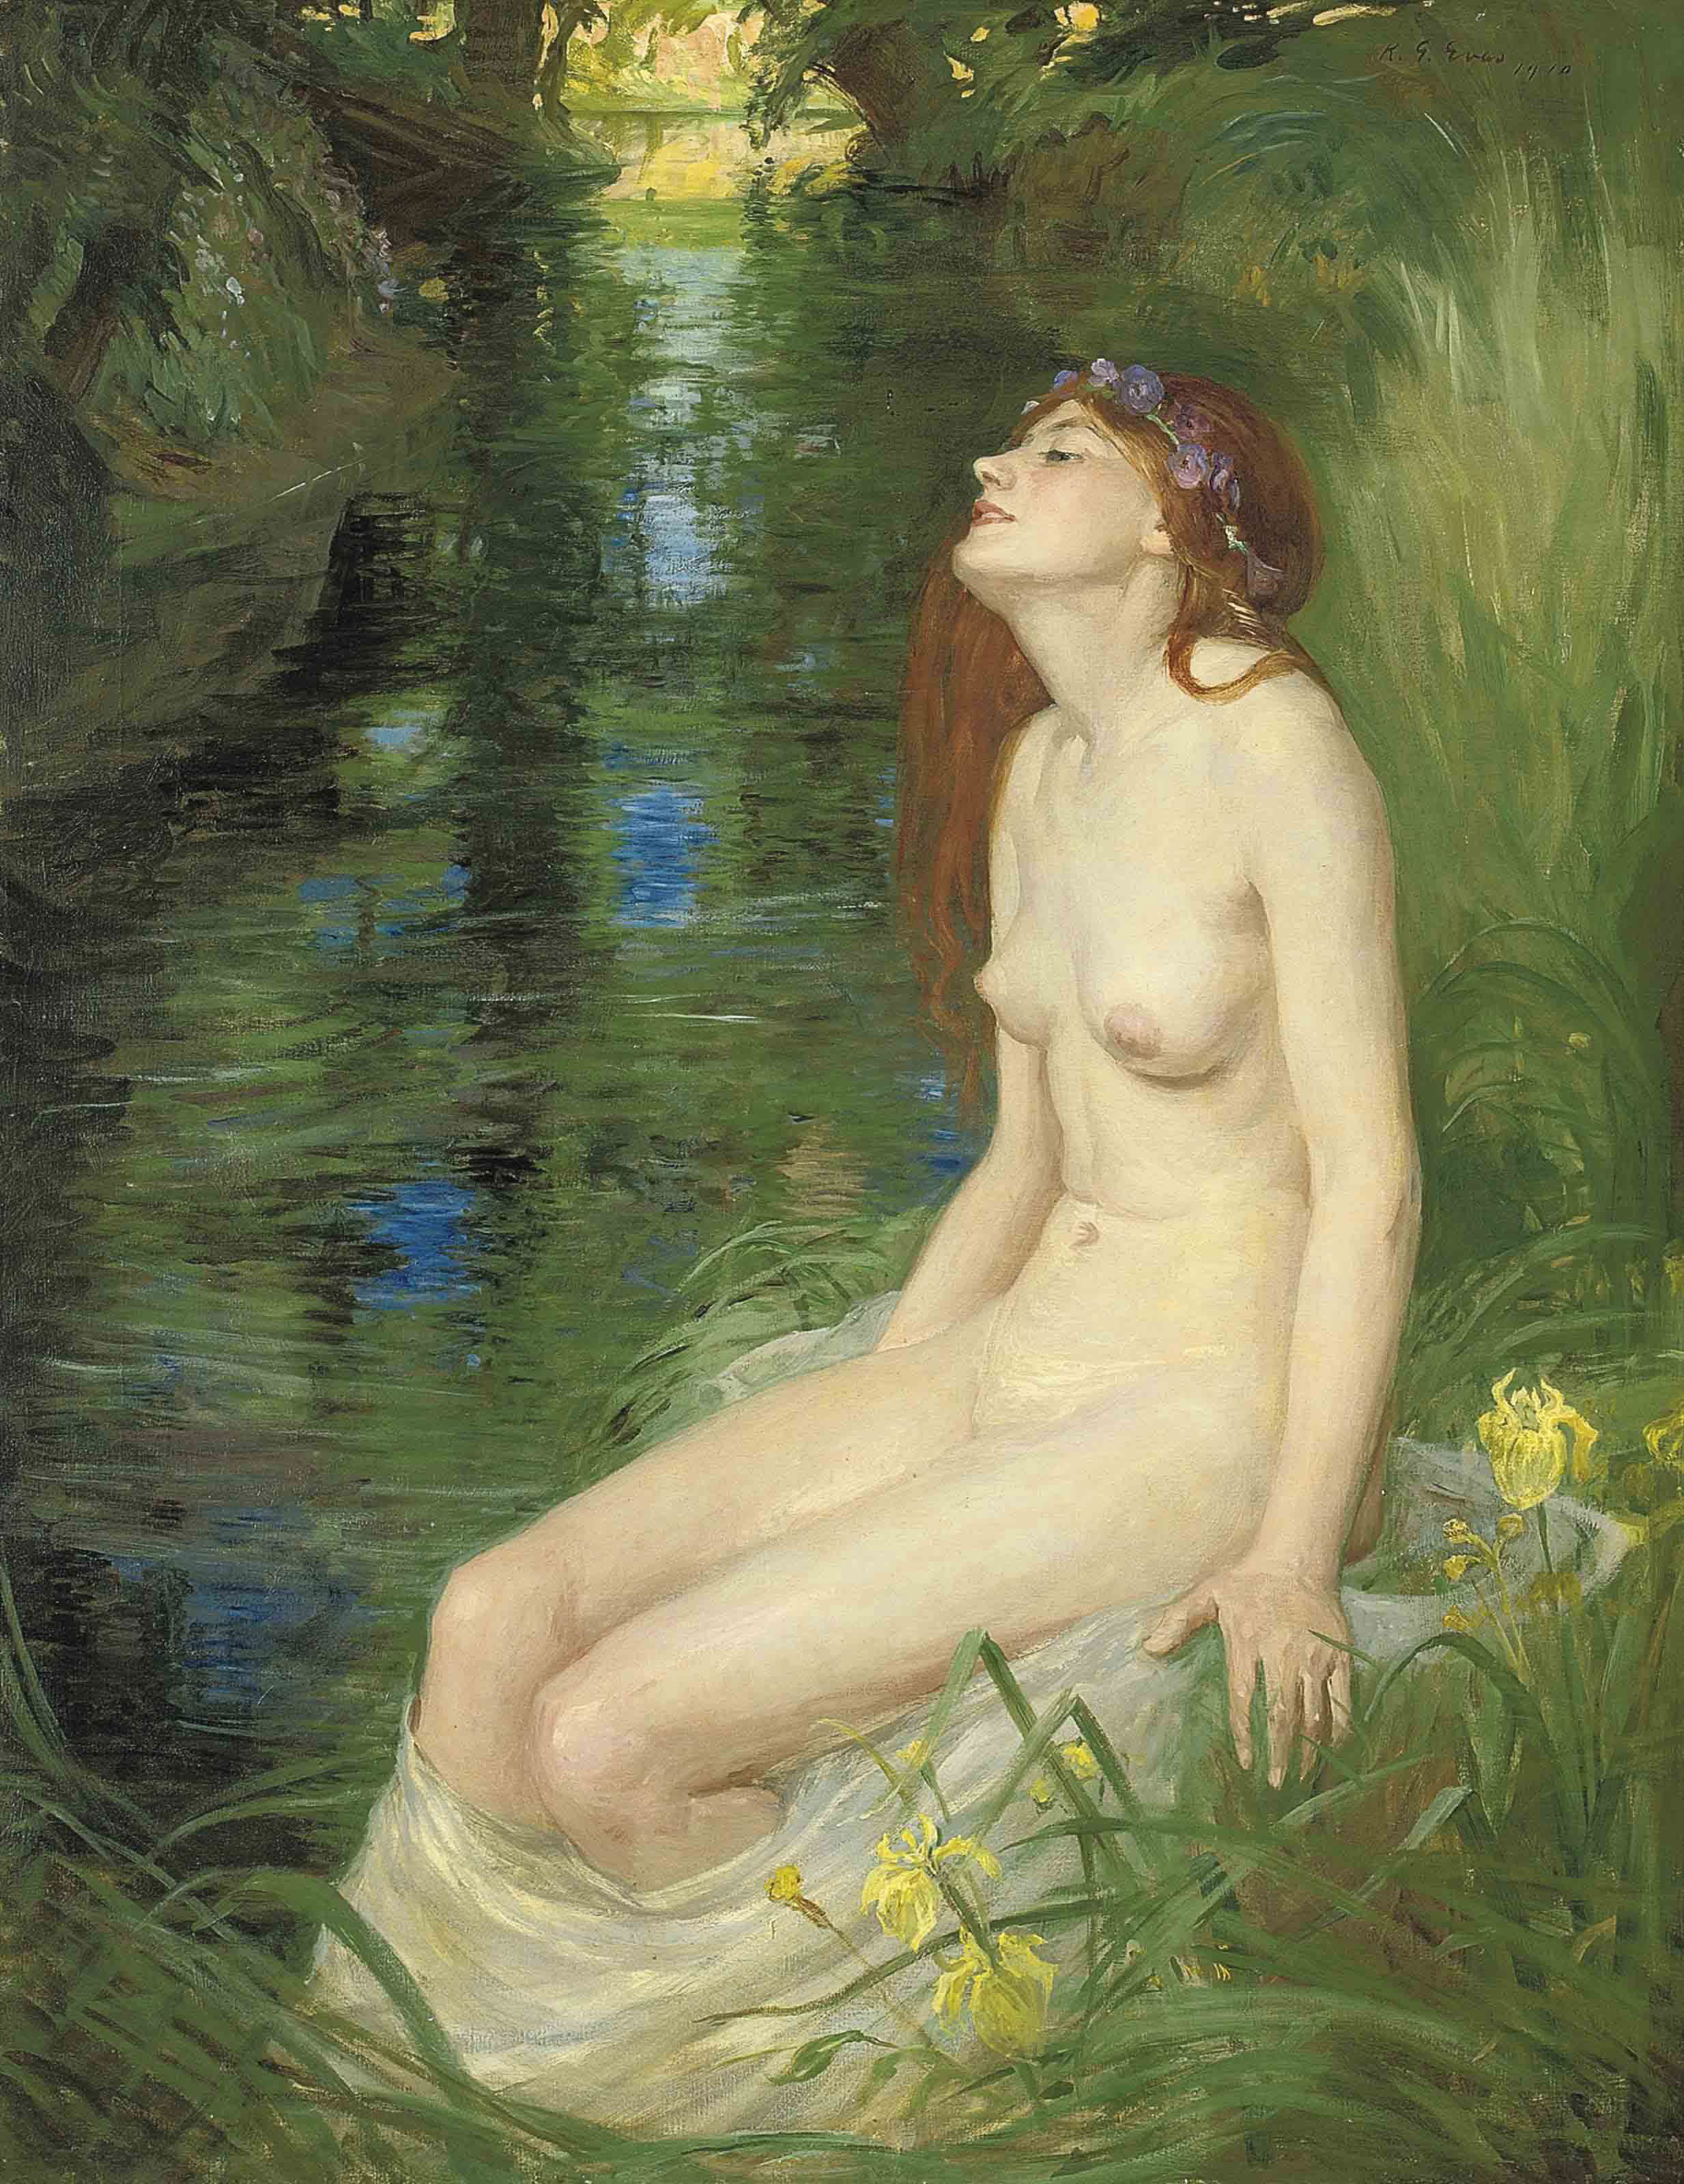 A nymph beside a pool